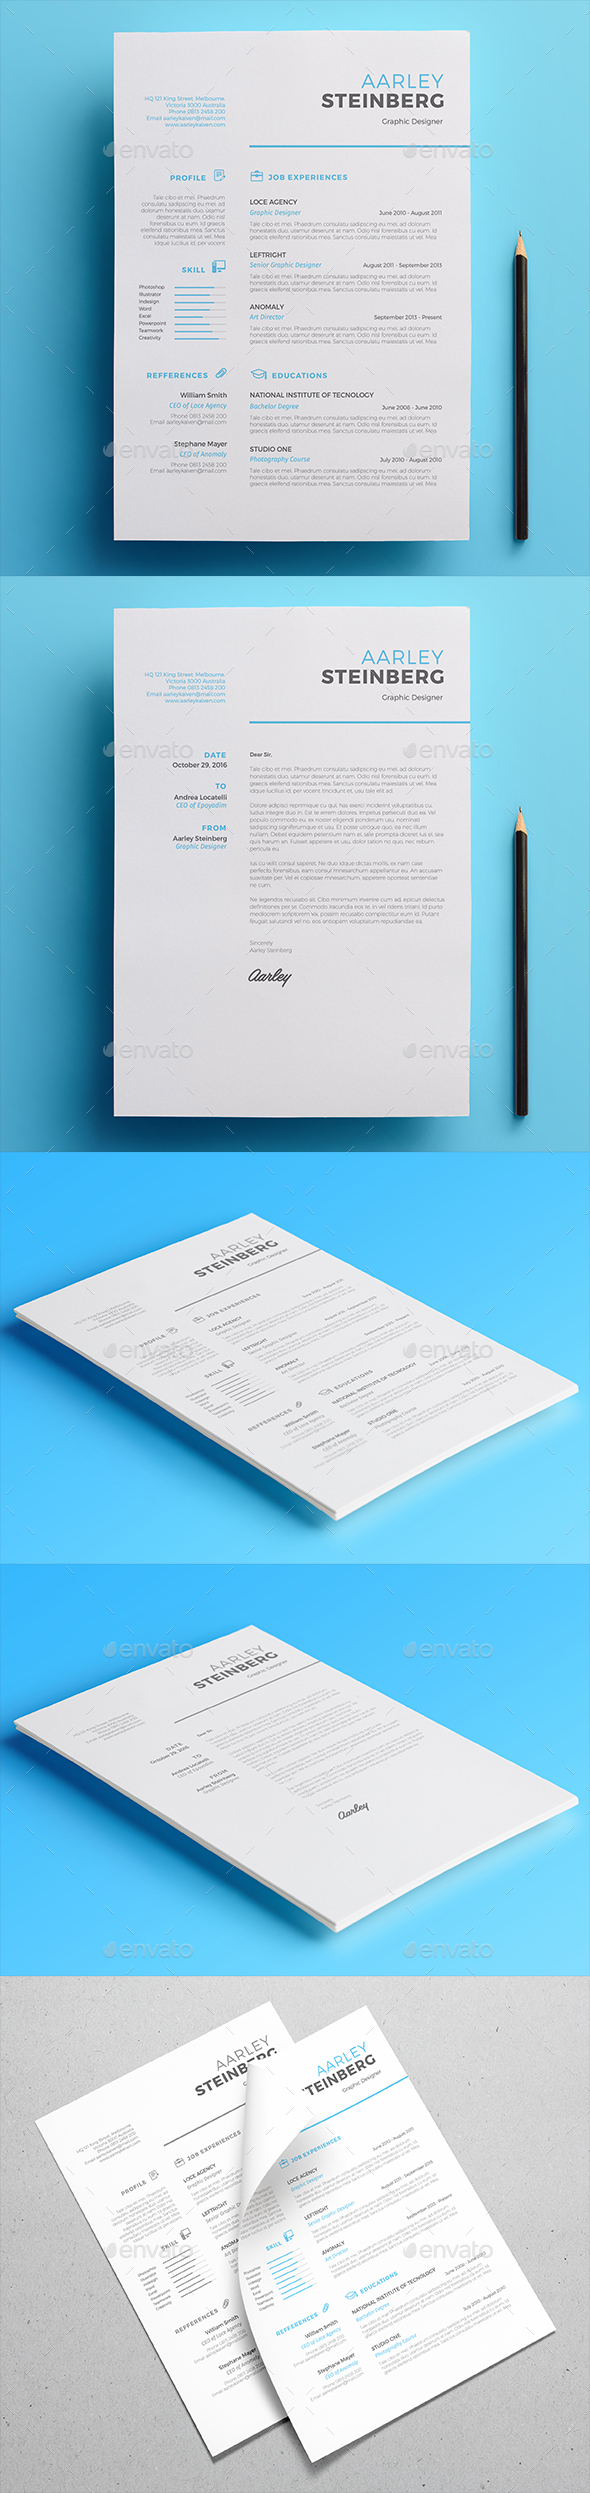 minimalist resume by aarleykaiven graphicriver